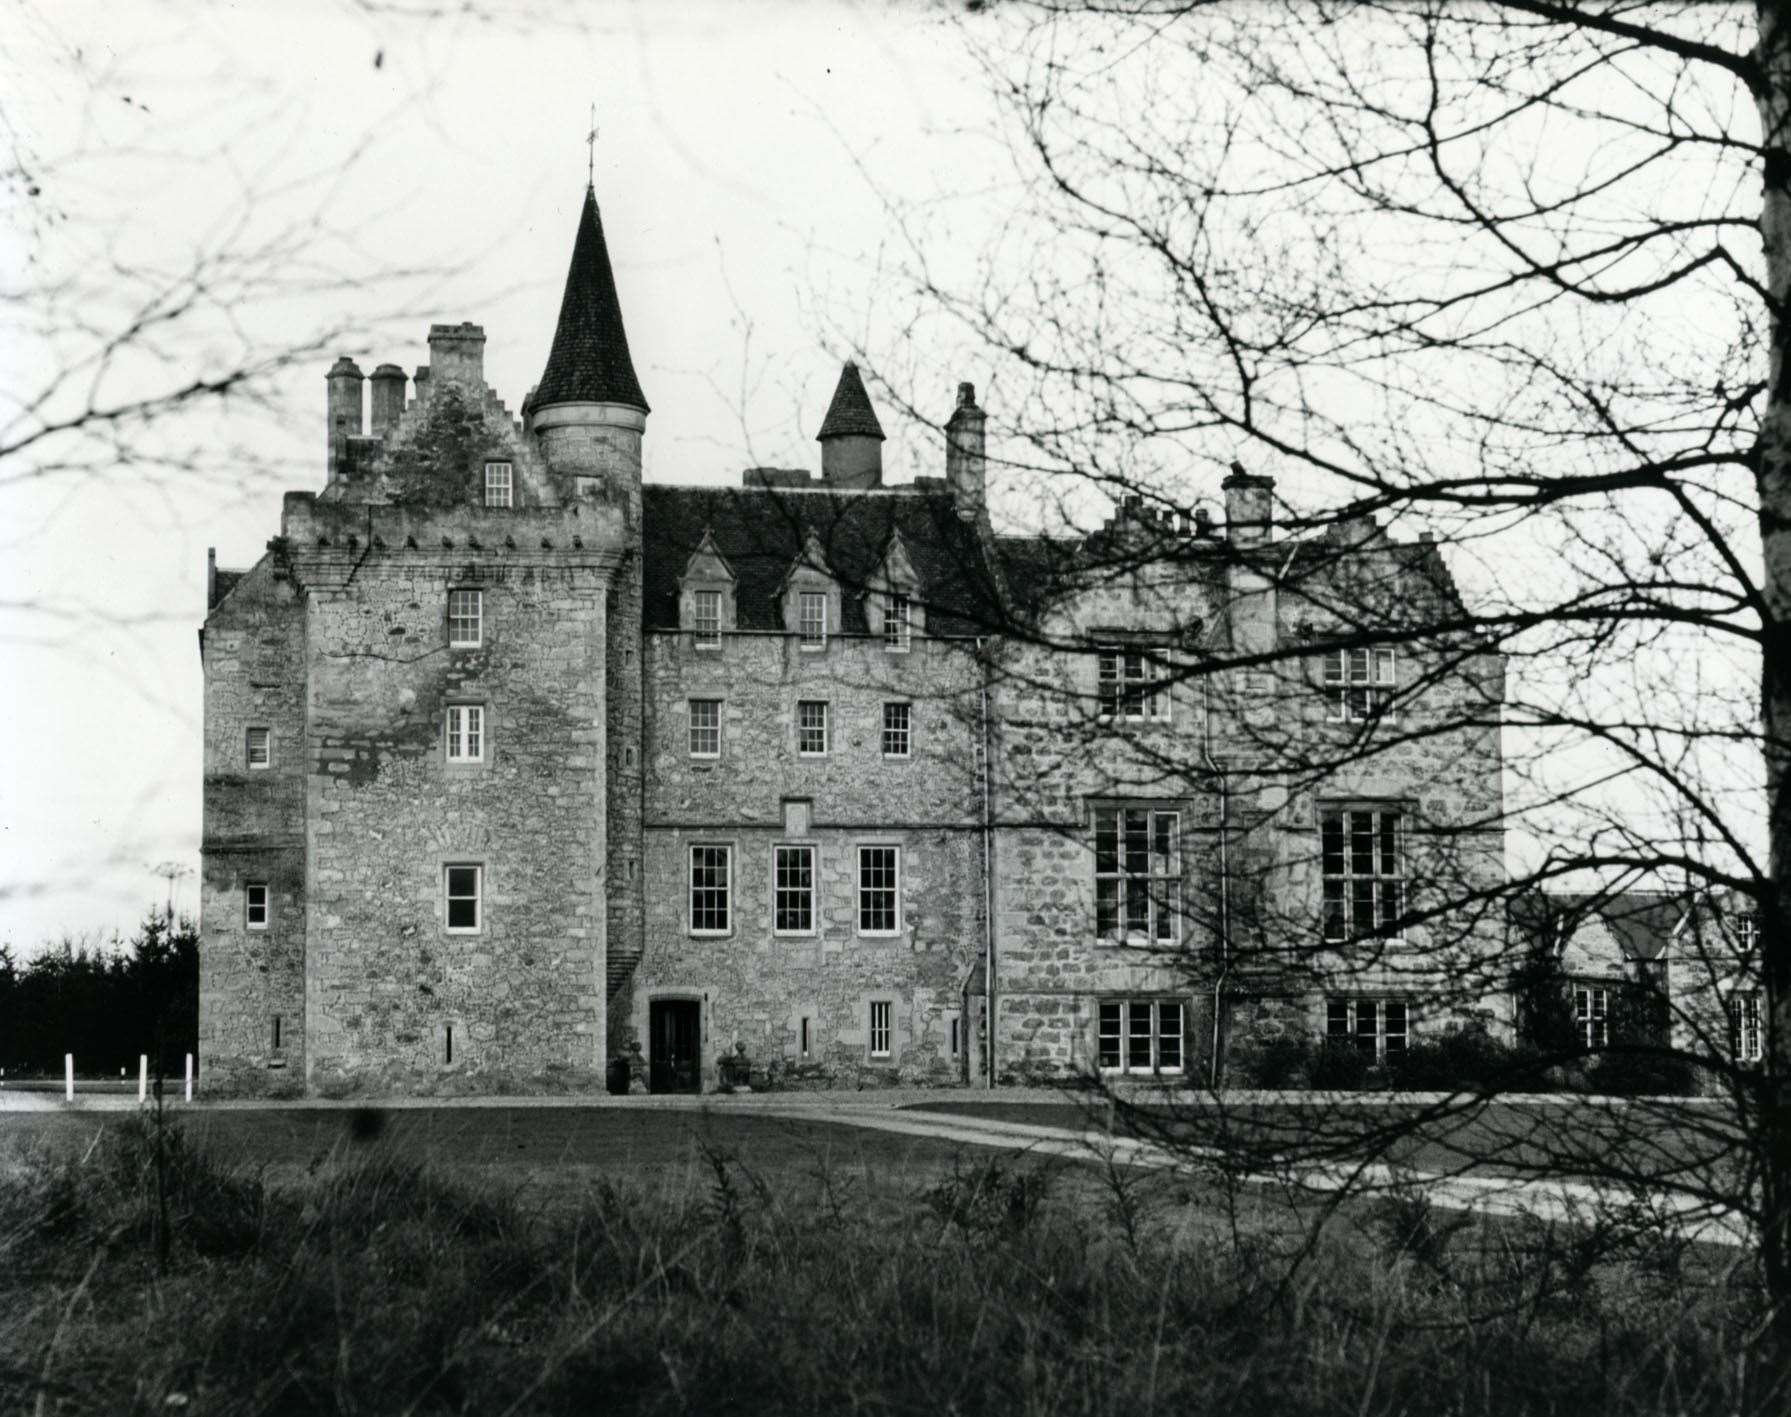 Brodie Castle, which is said by some to be haunted.